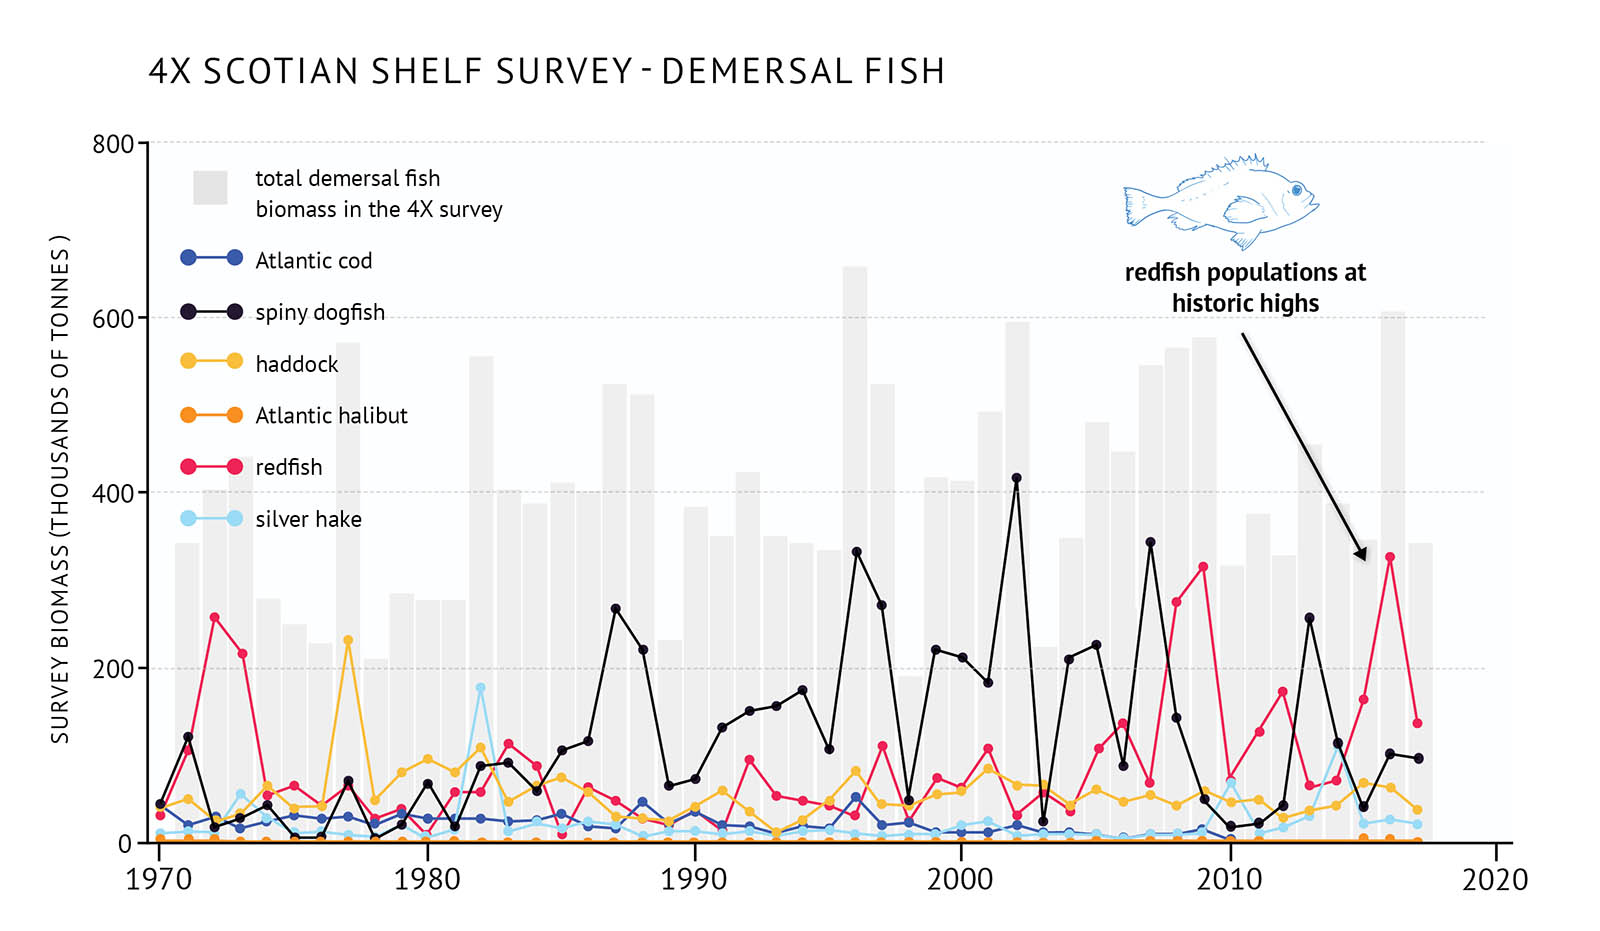 "Figure 28: 4X (western Scotian Shelf and Bay of Fundy) survey biomass for total demersal fish and individual species. A bar and line graph illustrates the survey biomass for total demersal fish as well as individual species for the 4X NAFO zone of the eastern Scotian Shelf. Text above the graph says ""4X Scotian Shelf Survey – Demersal Fish"". The vertical axis on the left shows the survey biomass in units of thousands of tonnes from 0 to 800 in increments of 200. The bottom horizontal axis shows the years between 1970 and 2020 in 10 year increments. The biomass for total demersal fish in the 4VW survey is represented by grey vertical bars. The total survey biomass fluctuates between approximately 200 thousand tonnes and 600 thousand tonnes over the timespan of 1970 to 2017 with no long-term trend. Six demersal fish species are represented by different coloured lines on the same graph. A legend appears on the left. A dark blue data line illustrates the survey biomass trend for Atlantic cod. A black data line illustrates the survey biomass trend for spiny dogfish. A yellow data line illustrates the survey biomass trend for haddock. An orange data line illustrates the survey biomass trend for Atlantic halibut. A red data line illustrates the survey biomass trend for redfish. A light blue data line illustrates the survey biomass trend for silver hake. Atlantic cod biomass between 1970 and 2010 is less than 50 thousand tonnes with small fluctuations. In the mid-2000s the biomass decreases and remains very low. There is a peak in redfish biomass in the early 1970s, and then it fluctuates around 100 thousand tonnes until the mid-2000s when it is generally higher with peaks of approximately 300 thousand tonnes. Spiny dogfish biomass fluctuates, but after the 1980s is generally higher with peaks between 200 and 400 thousand tonnes. Haddock is generally below 100 thousand tonnes with small fluctuations and no trend until it increases in the mid-2010s. Atlantic halibut has a low biomass compared to other species on the graph, but increases in recent years. Silver hake biomass is low compared to the other species with small fluctuations. A small, light blue outline-drawing of a redfish is placed on the graph above the vertical bars to the right-hand side. Below the drawing there is text which states ""redfish populations at historic highs"". An arrow points from the text to the red line in the mid-2010s."